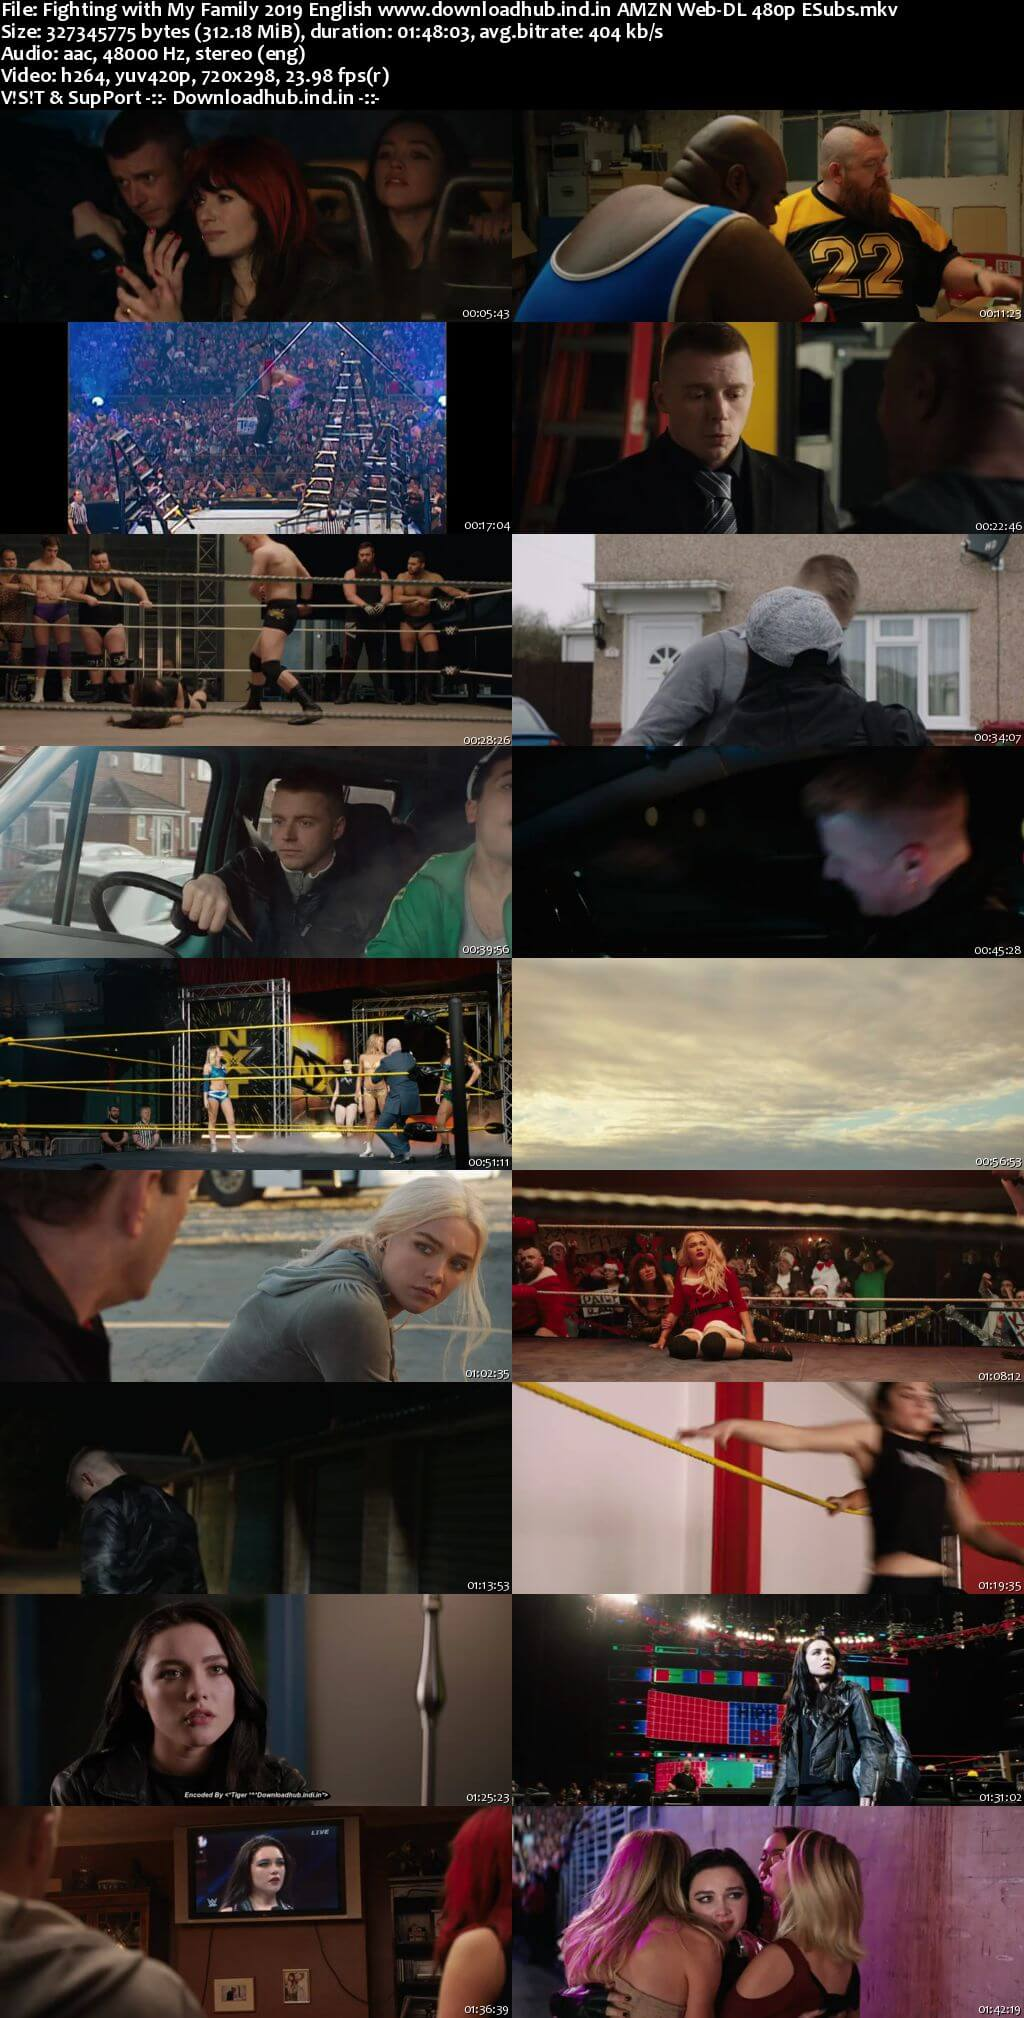 Fighting with My Family 2019 English 300MB AMZN Web-DL 480p ESubs